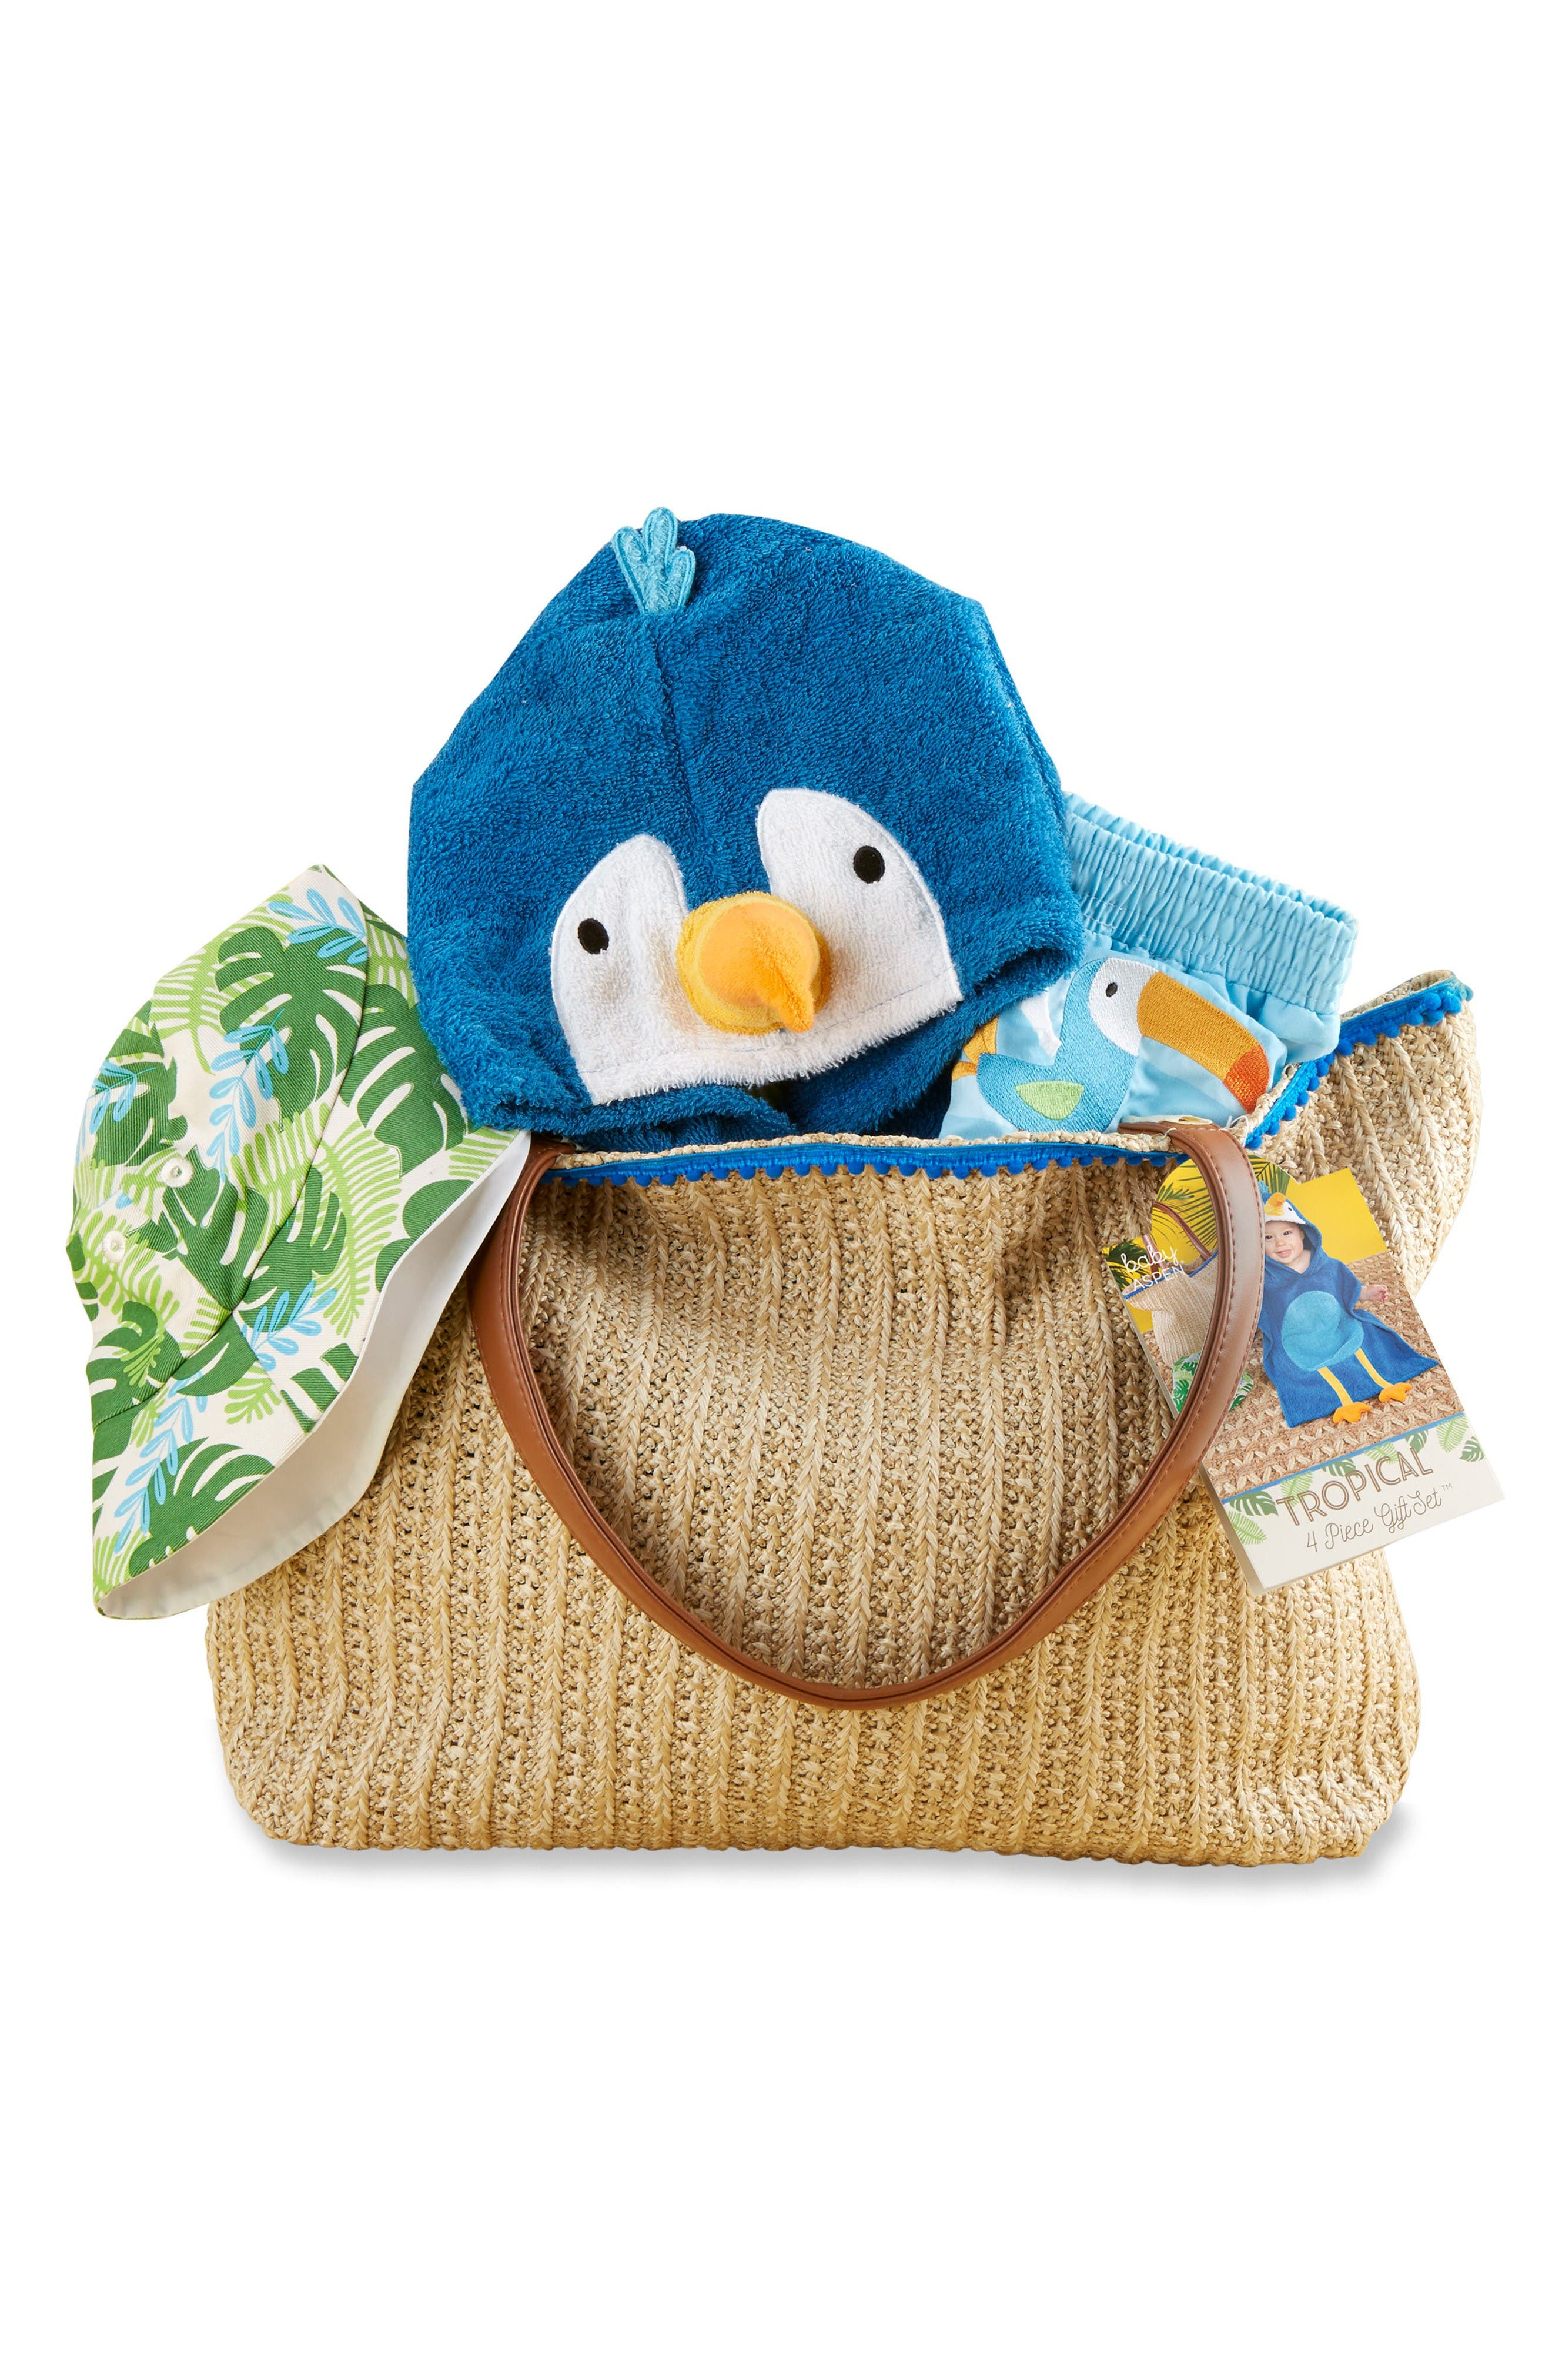 Alternate Image 1 Selected - Baby Aspen Tropical Hooded Towel, Swimsuit, Sun Hat & Tote Set (Baby)